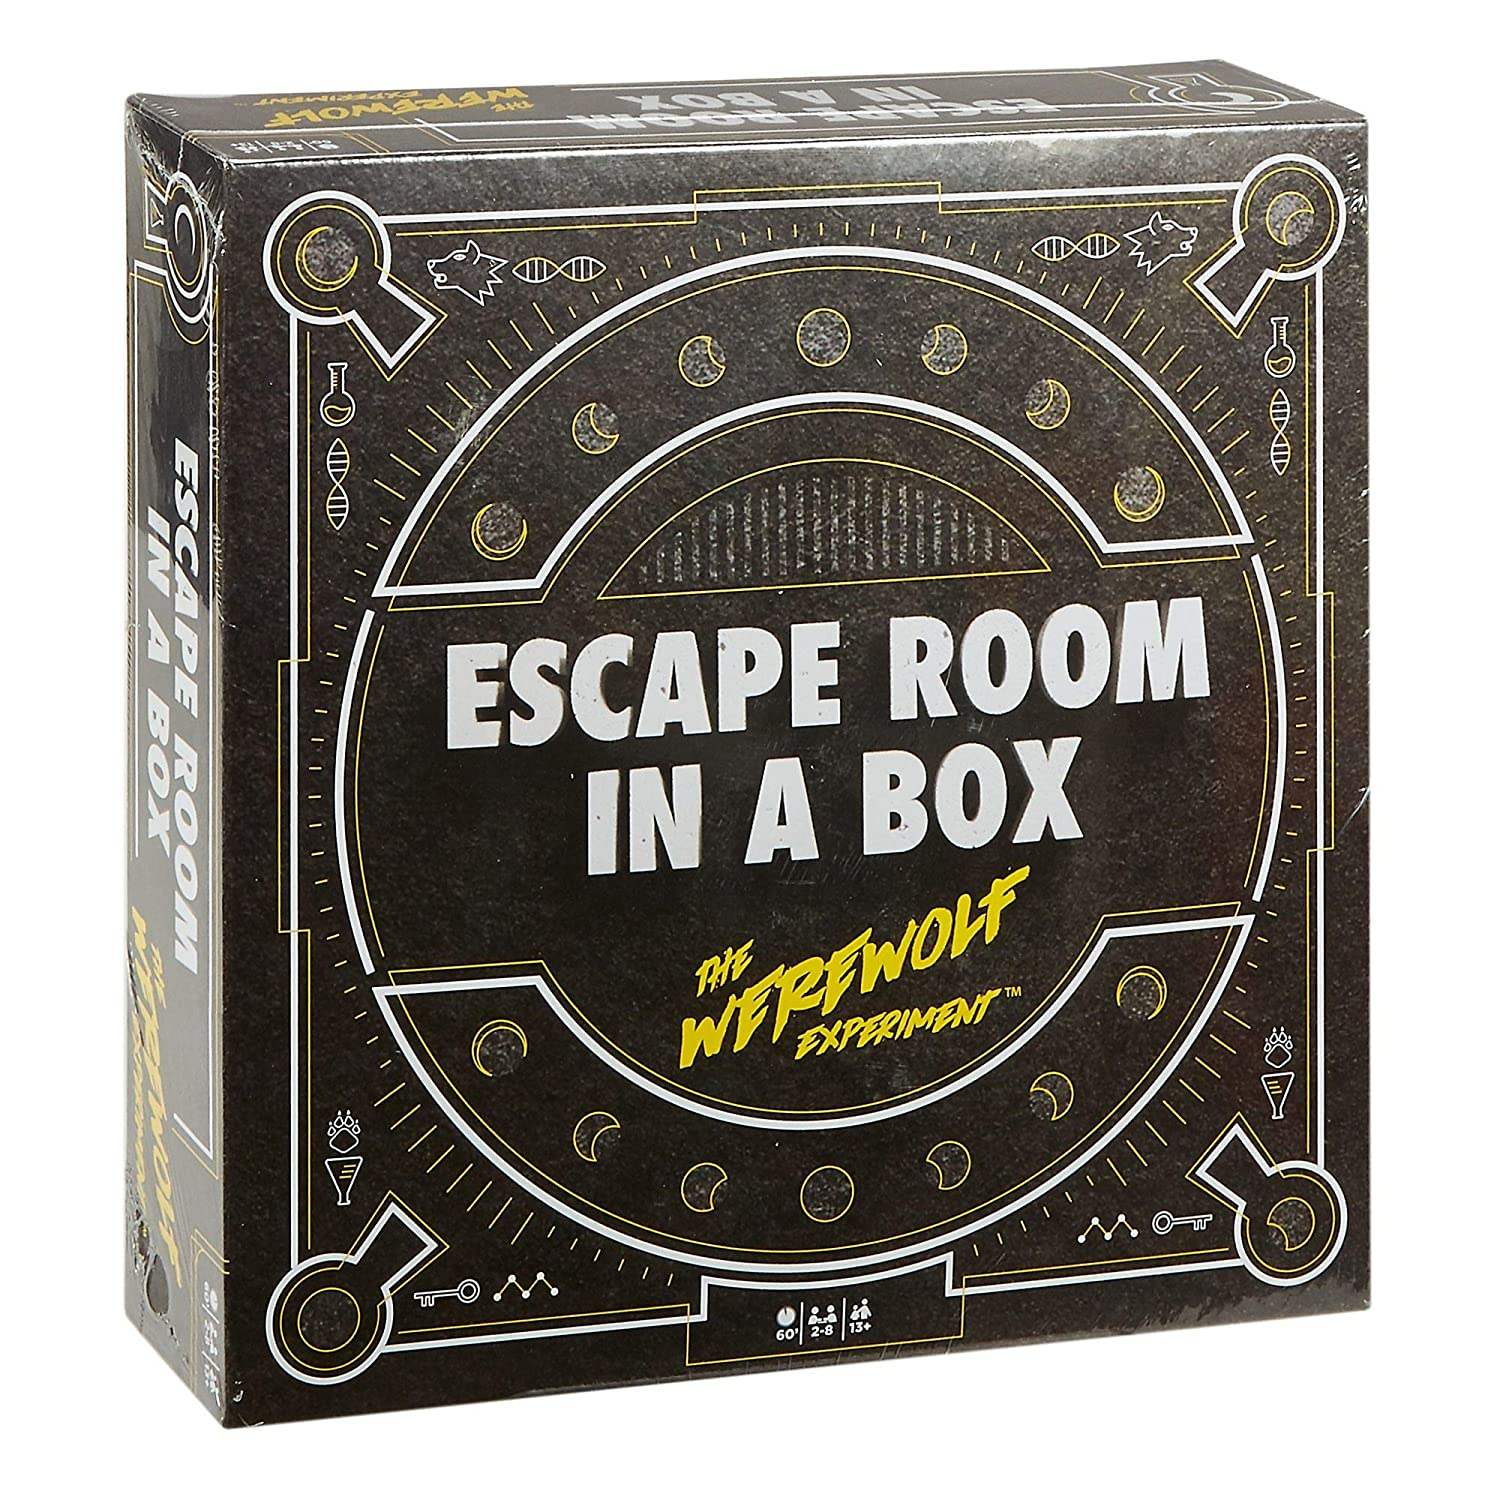 photo about Free Printable Escape Room Game titled Escape Area within just a Box: The Werewolf Experiment, Board Sport for Grown ups and Young children 13+